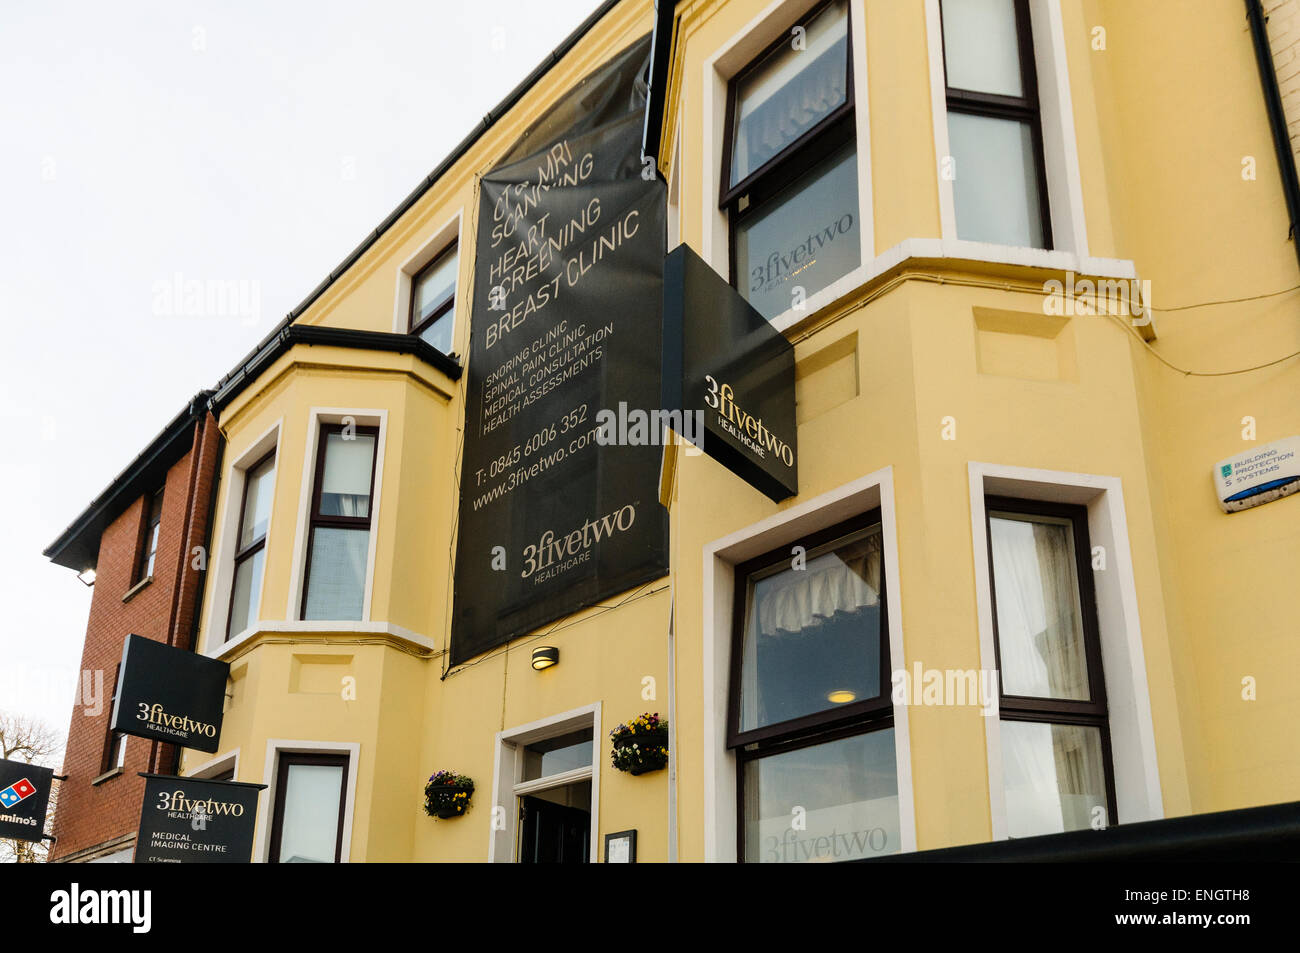 3fivetwo private medical centre, Lisburn Road, Belfast, specialising in cardiac screening - Stock Image